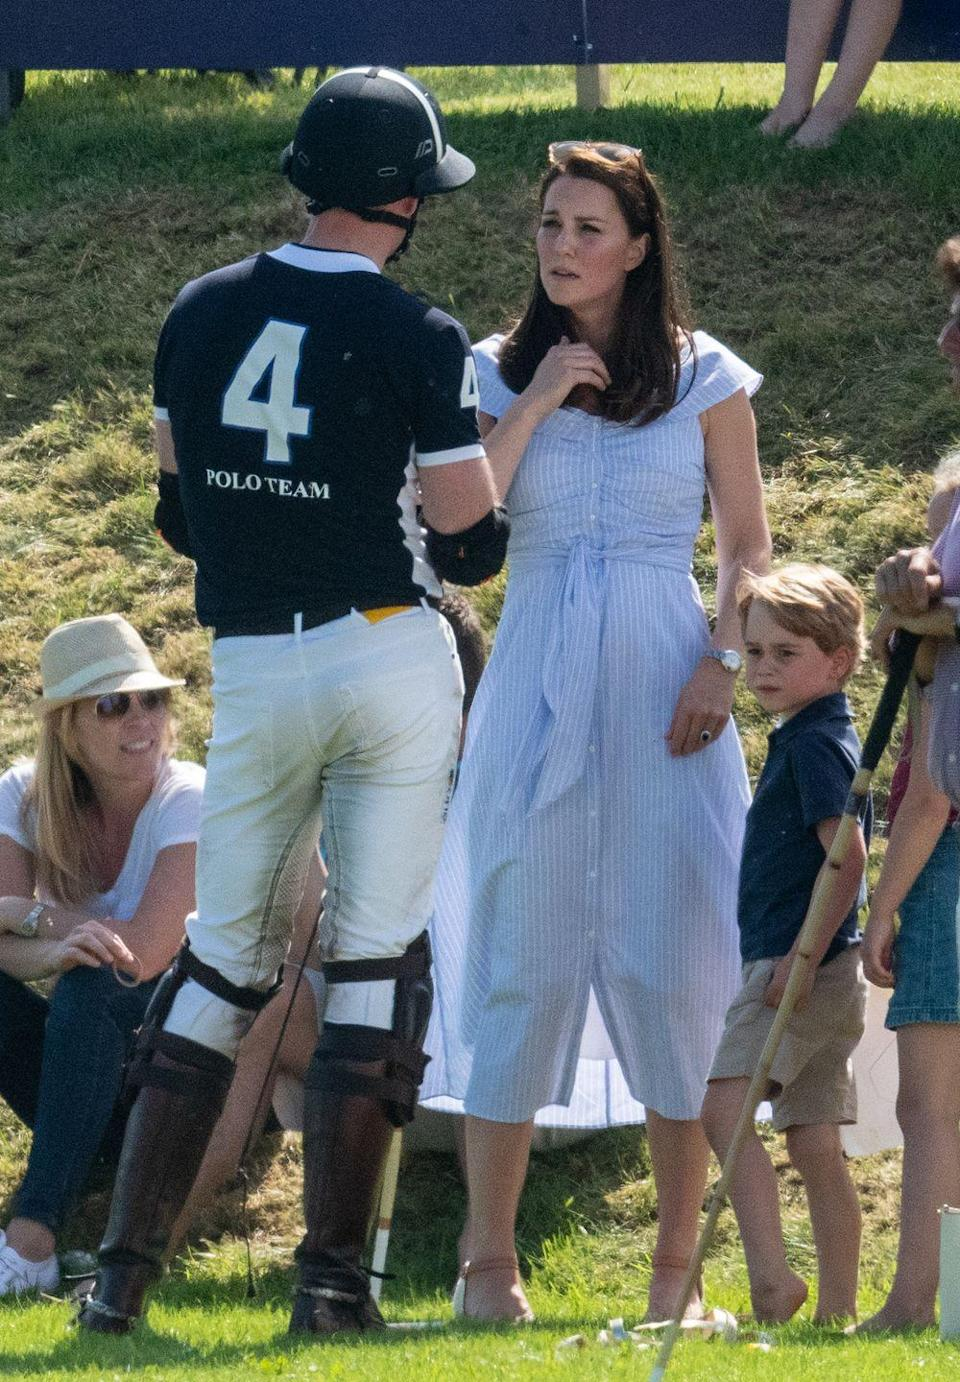 """<p>Duchess Kate wore another blue dress just hours after the Trooping the Colour parade! <a href=""""https://www.townandcountrymag.com/society/tradition/a21252562/kate-middleton-zara-blue-striped-dress-polo-match/"""" rel=""""nofollow noopener"""" target=""""_blank"""" data-ylk=""""slk:The Duchess wore a $70 off-the-shoulder dress by Zara"""" class=""""link rapid-noclick-resp"""">The Duchess wore a $70 off-the-shoulder dress by Zara</a> with espadrilles and sunglasses while attending Prince William's charity polo match with Prince George and Princess Charlotte. </p><p><a class=""""link rapid-noclick-resp"""" href=""""https://go.redirectingat.com?id=74968X1596630&url=https%3A%2F%2Fwww.zara.com%2Fus%2Fen%2Fstriped-off-the-shoulder-dress-p04043095.html&sref=https%3A%2F%2Fwww.townandcountrymag.com%2Fstyle%2Ffashion-trends%2Fnews%2Fg1633%2Fkate-middleton-fashion%2F"""" rel=""""nofollow noopener"""" target=""""_blank"""" data-ylk=""""slk:SHOP NOW"""">SHOP NOW</a> Zara <em>Striped Off-the-Shoulder Dress, $69.90 </em><br></p>"""